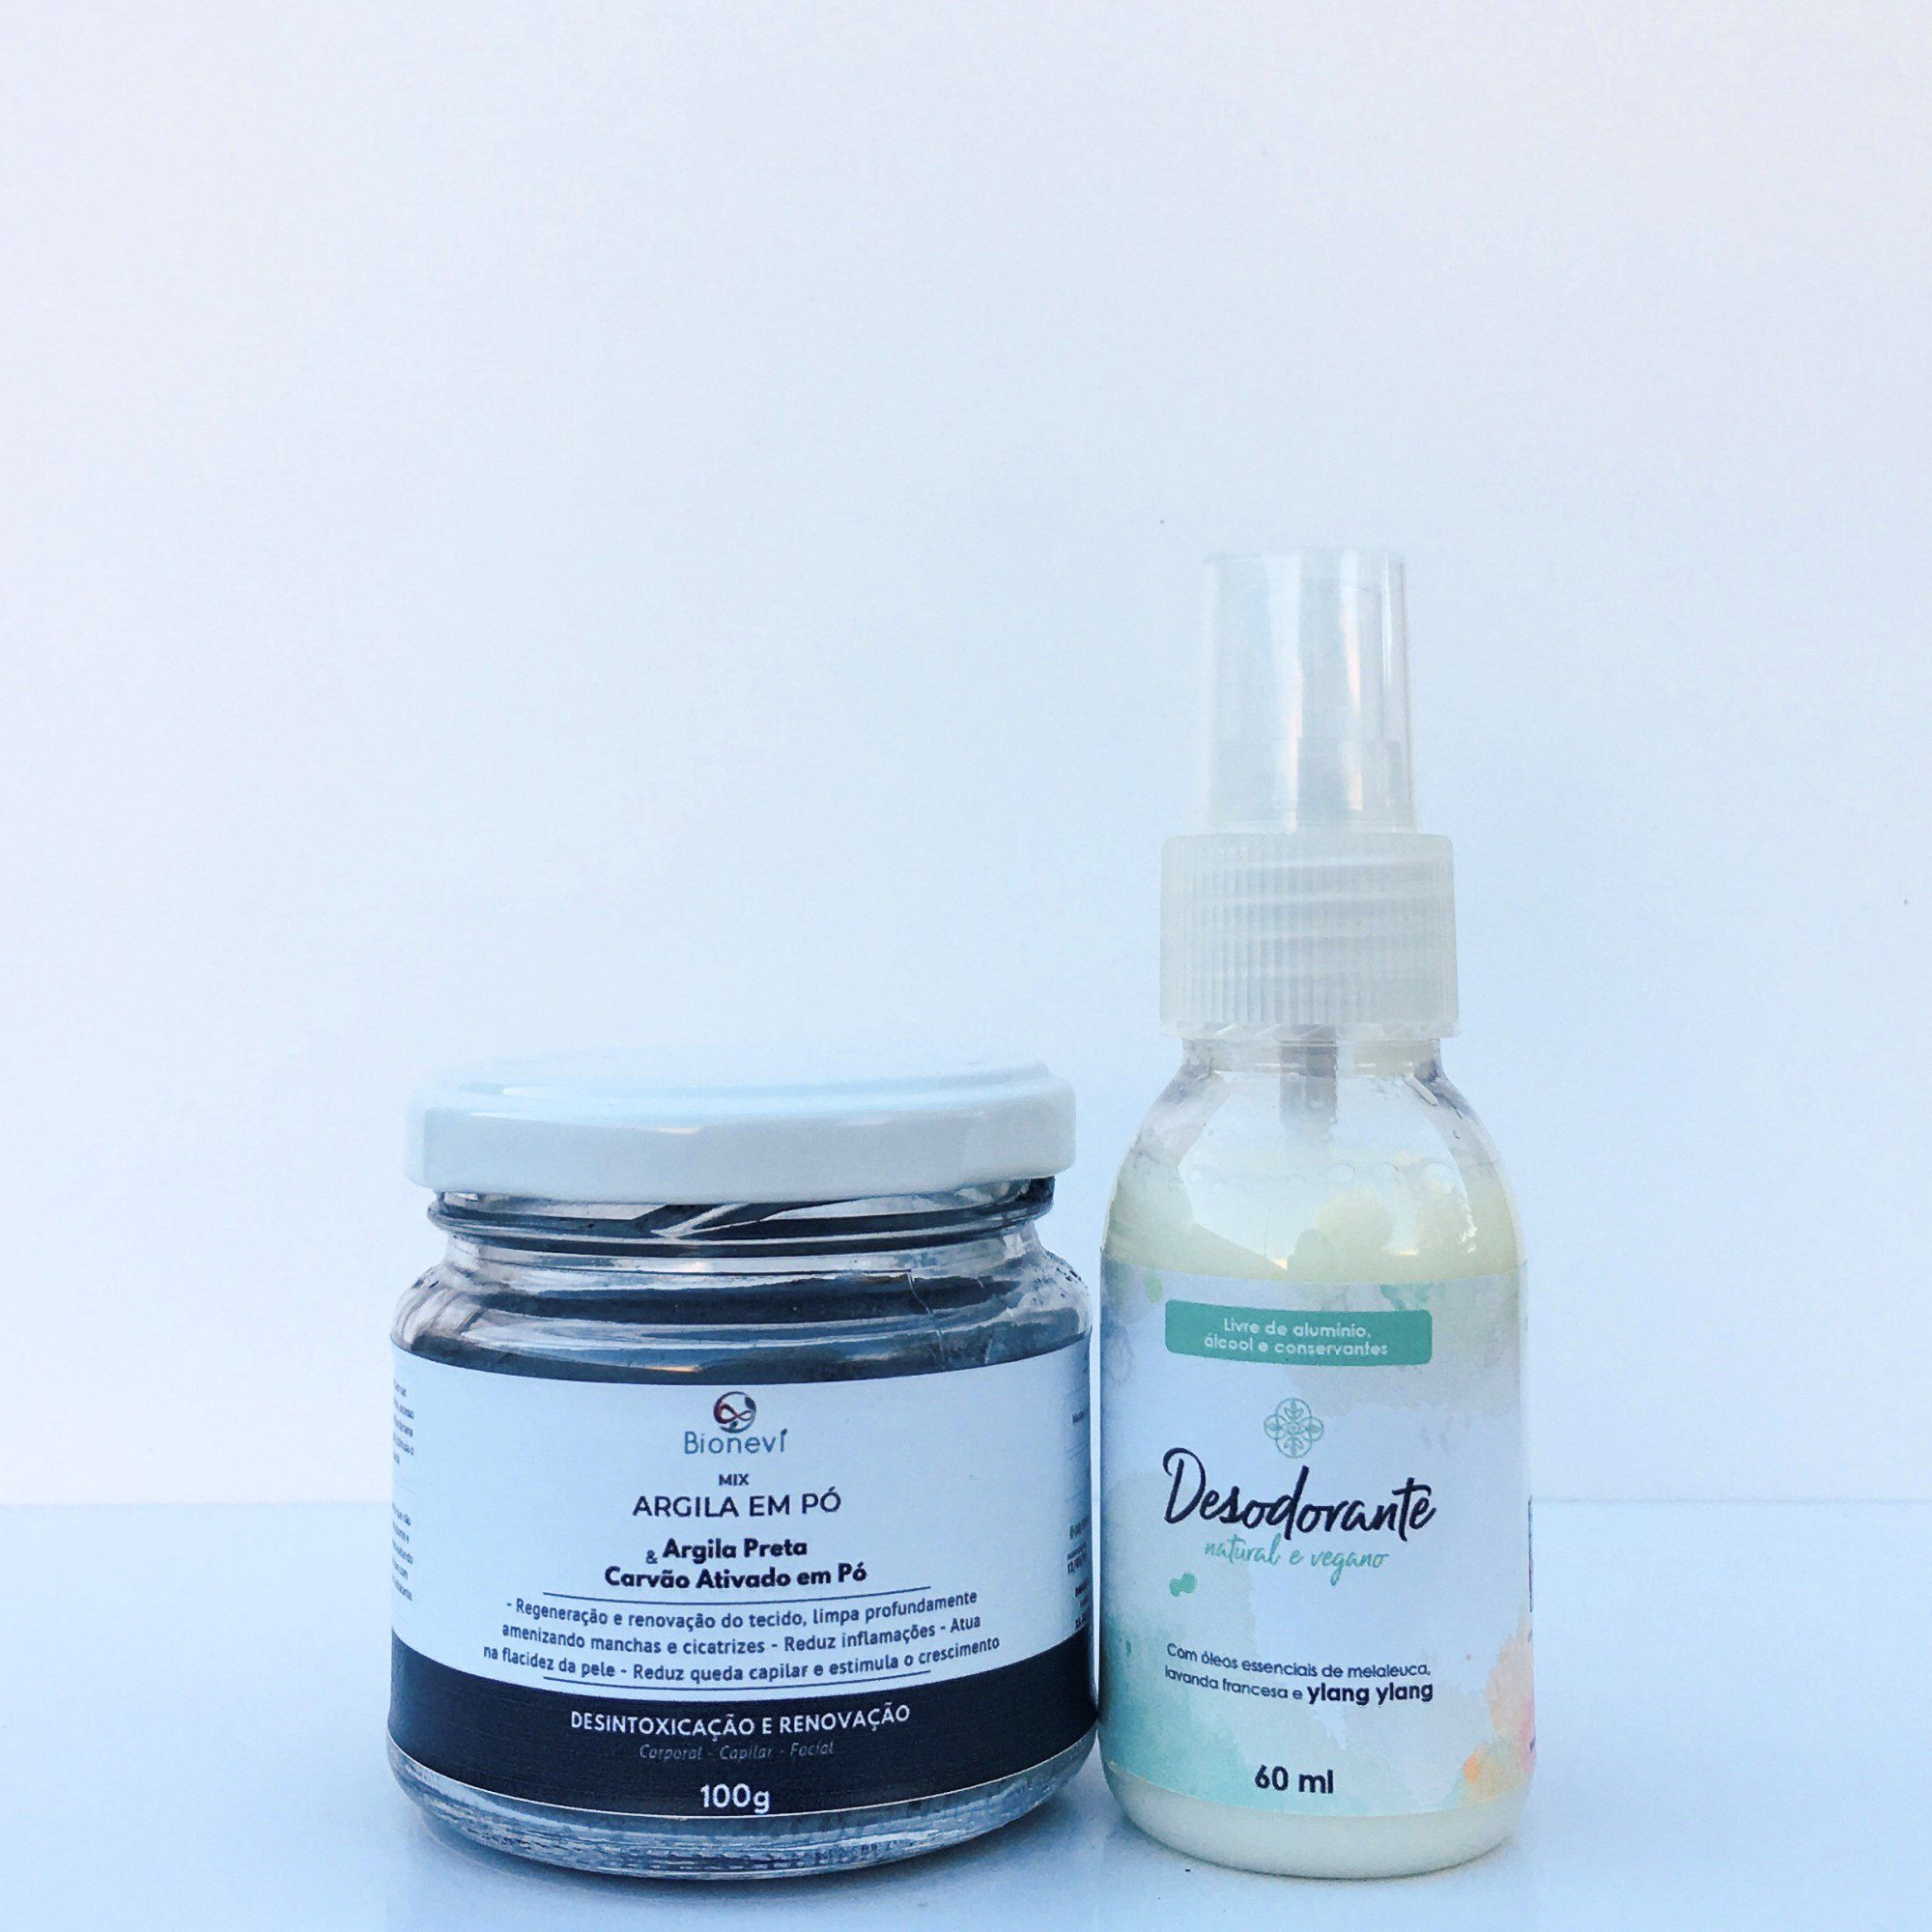 KIT DETOX DESODORANTE NATURAL - LAVANDA